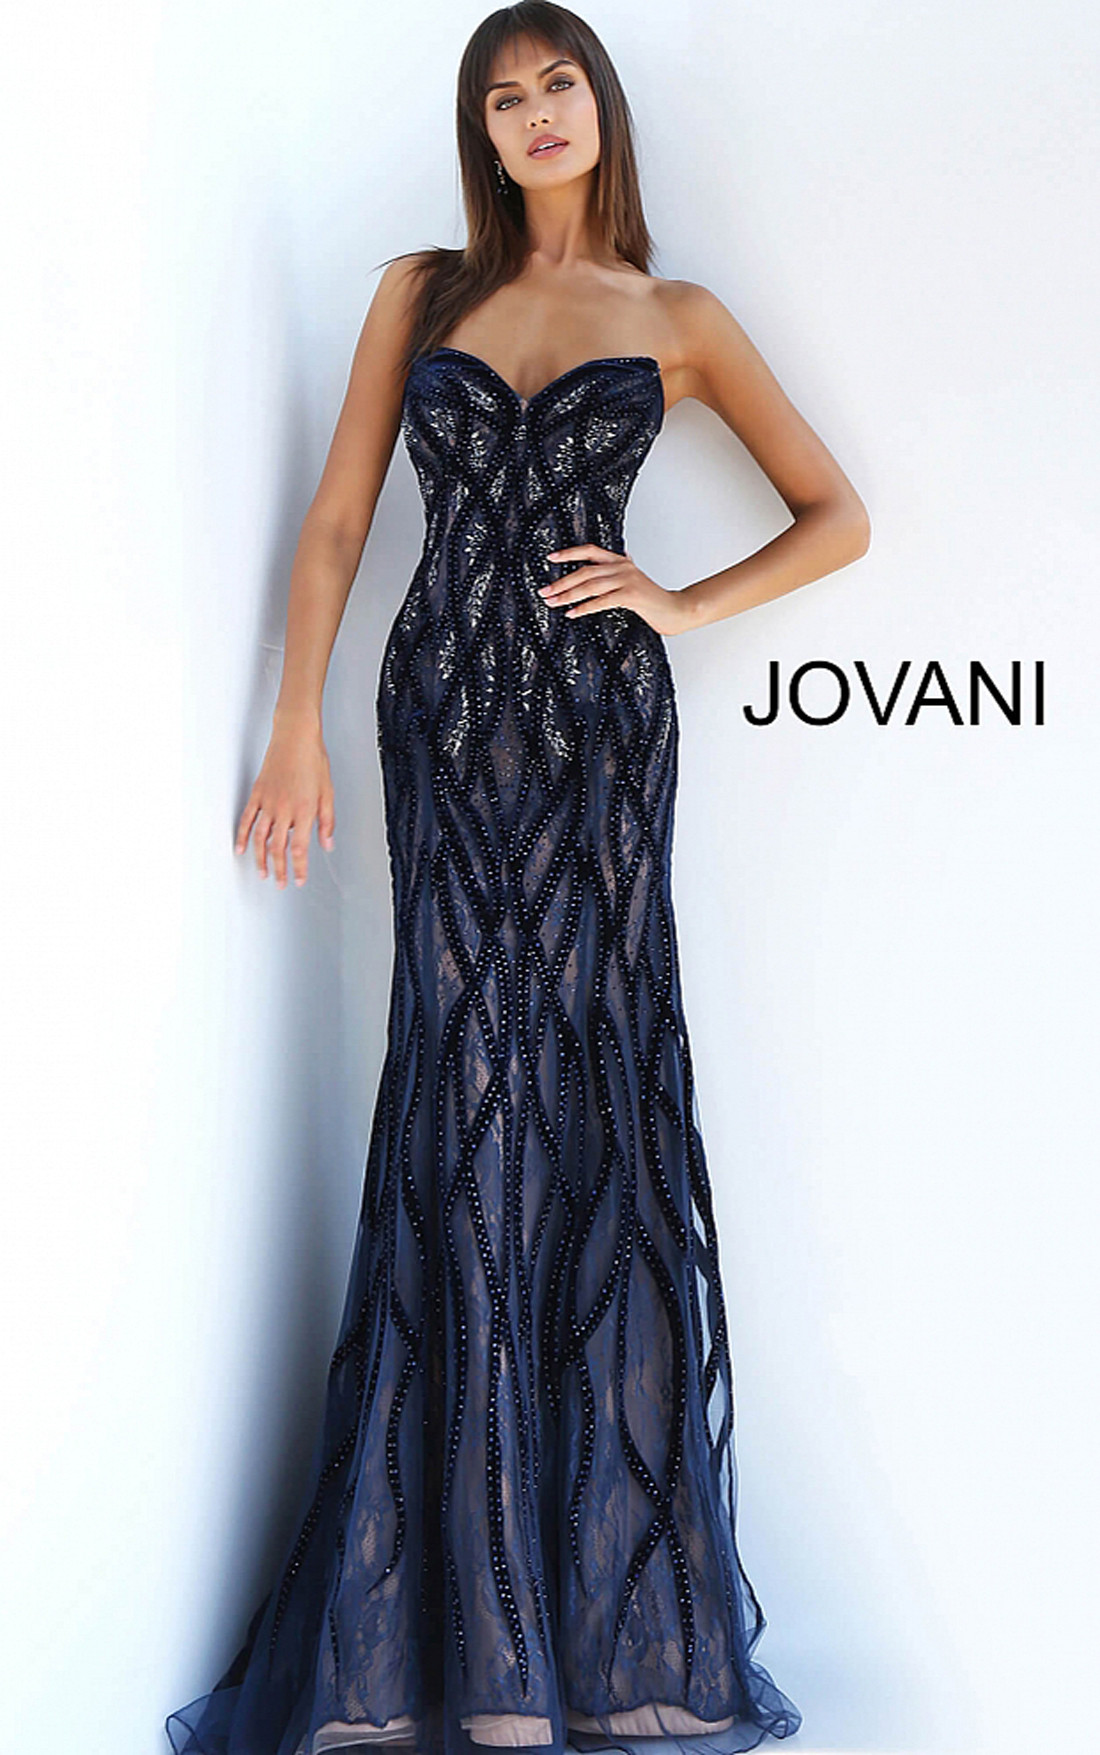 828e4df2b253 Jovani Dresses | Womens Navy Embellished Lace Strapless Gown ...